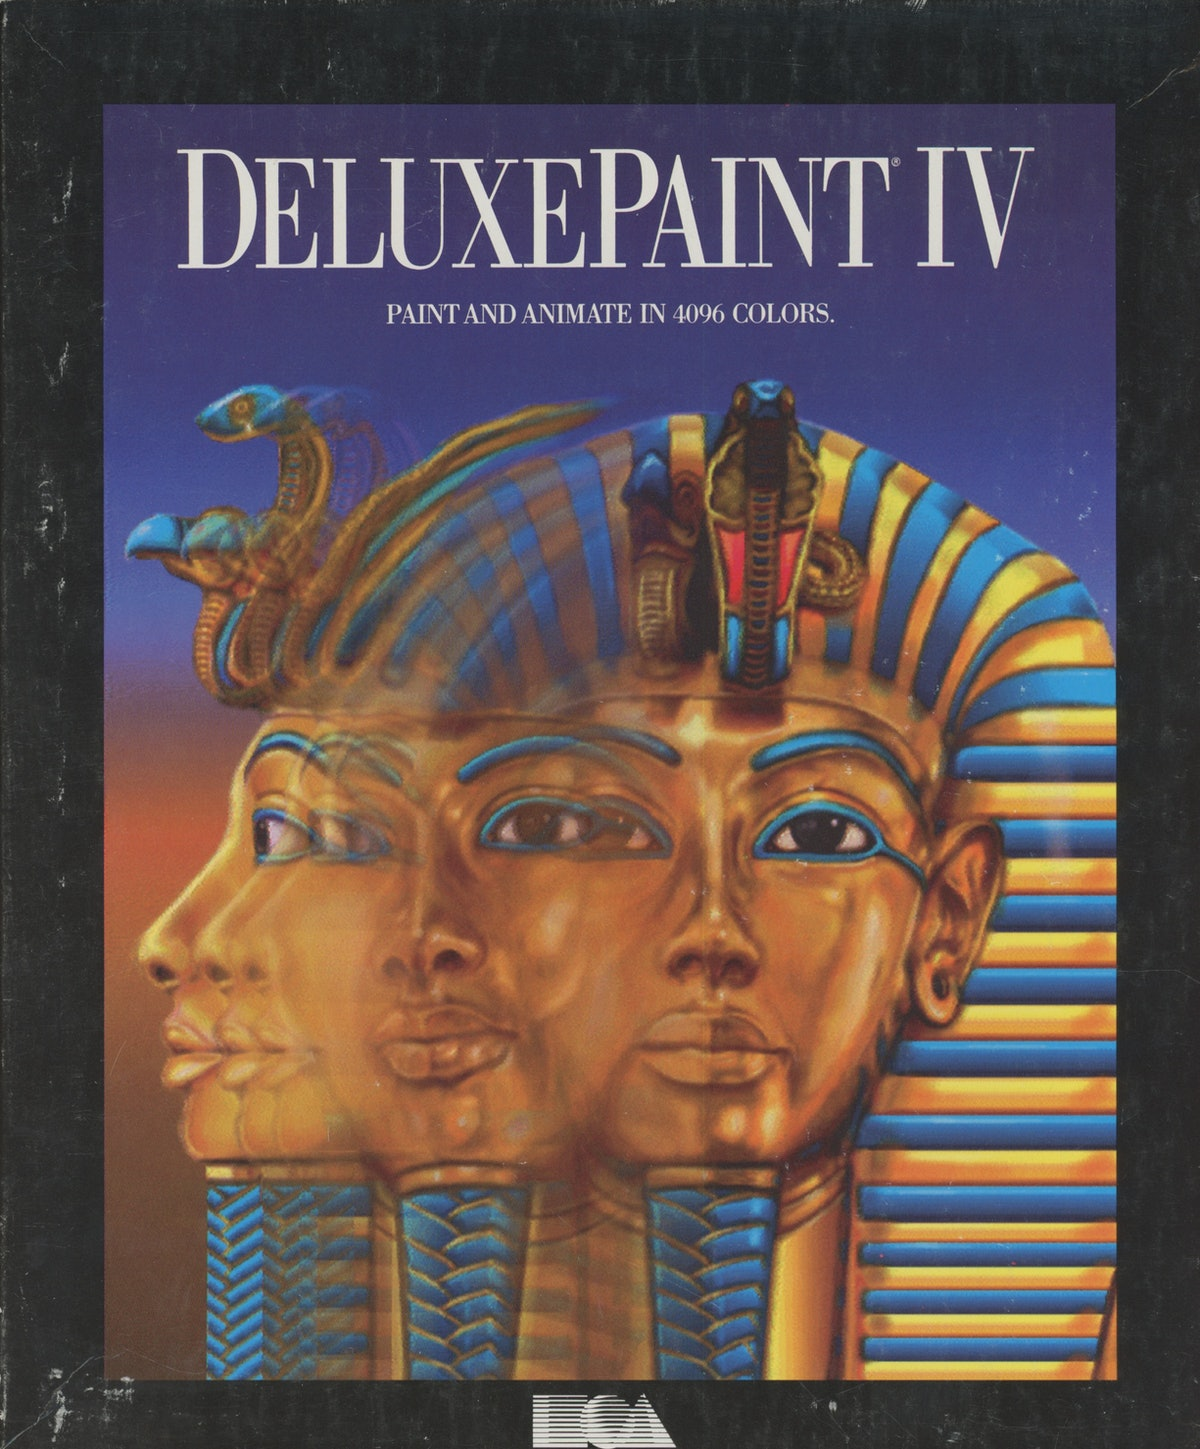 Deluxe Paint IV